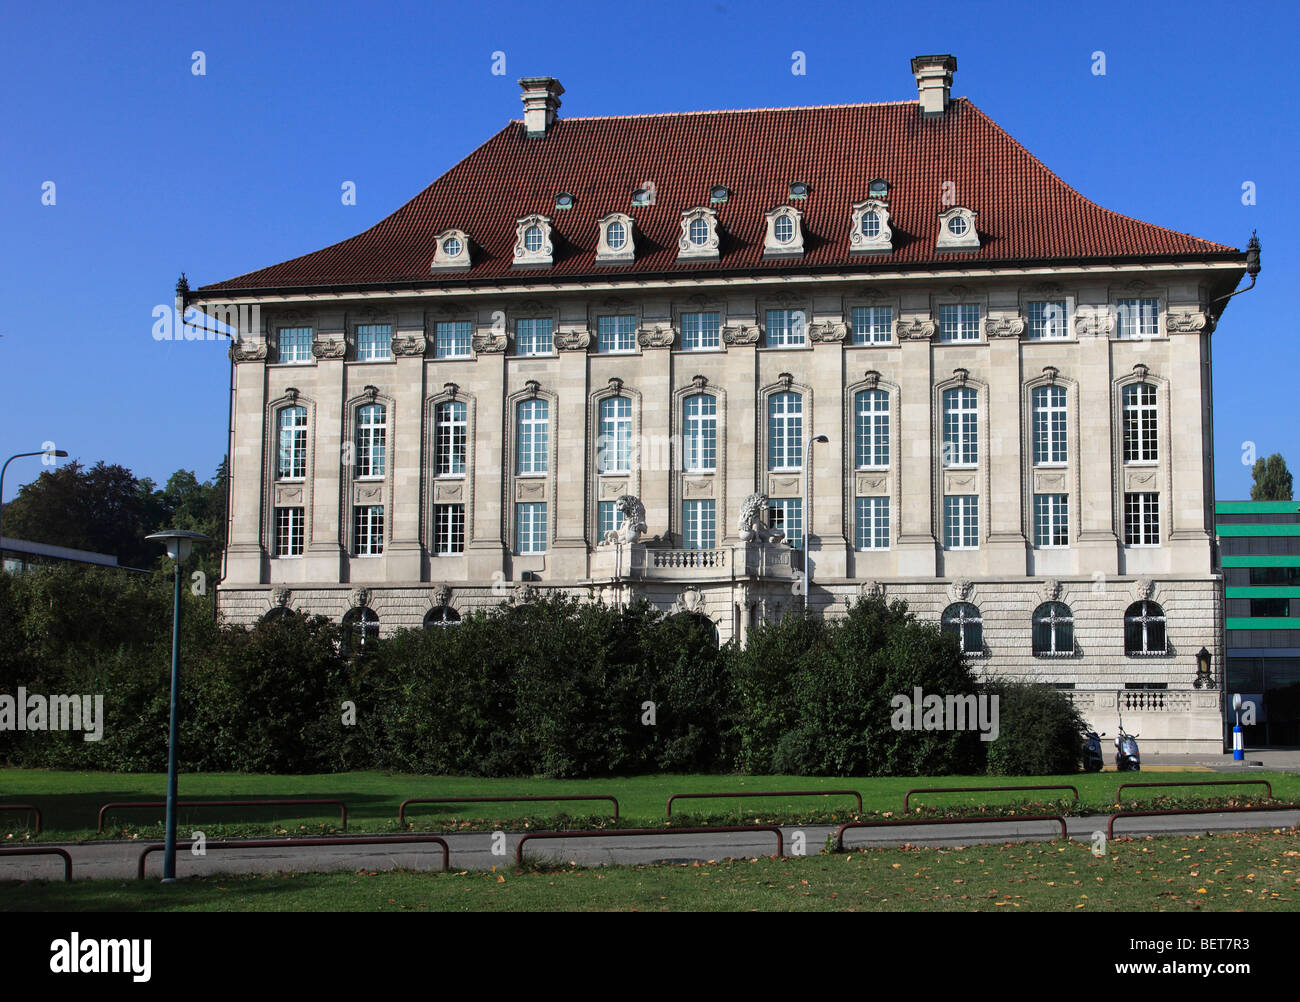 Switzerland, Zurich, Swiss Re Insurance Building - Stock Image